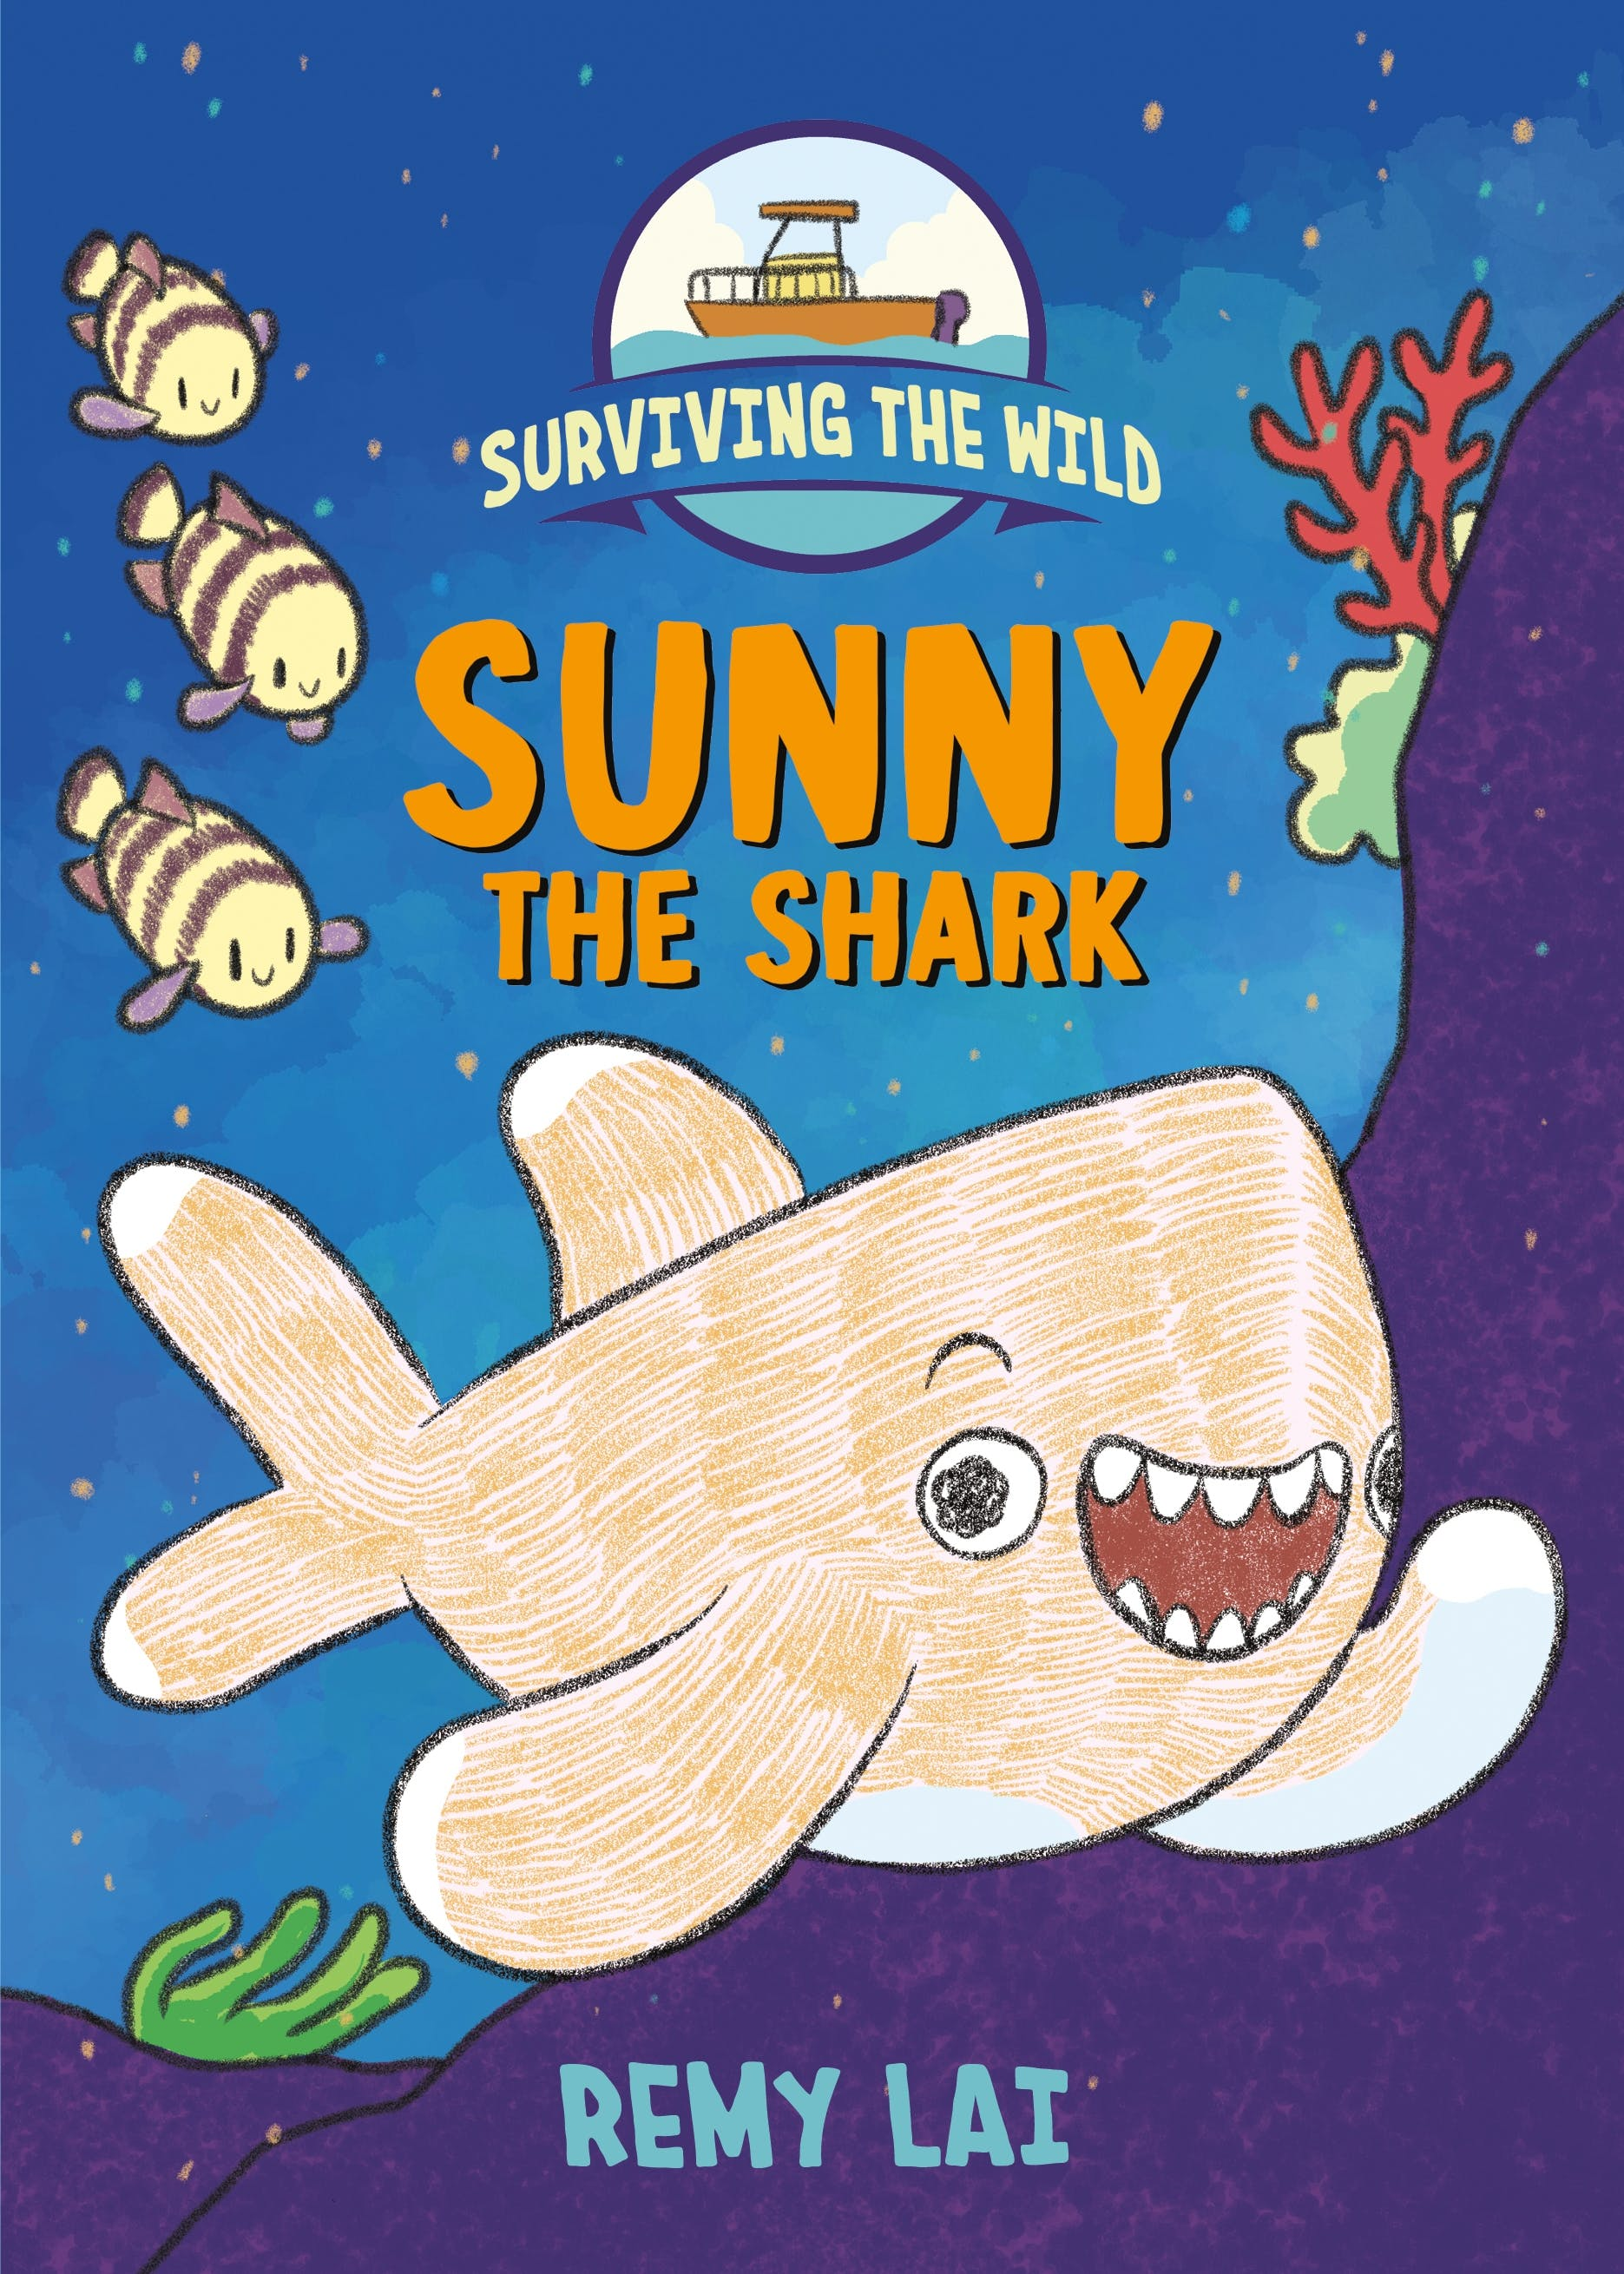 Image of Surviving the Wild: Sunny the Shark